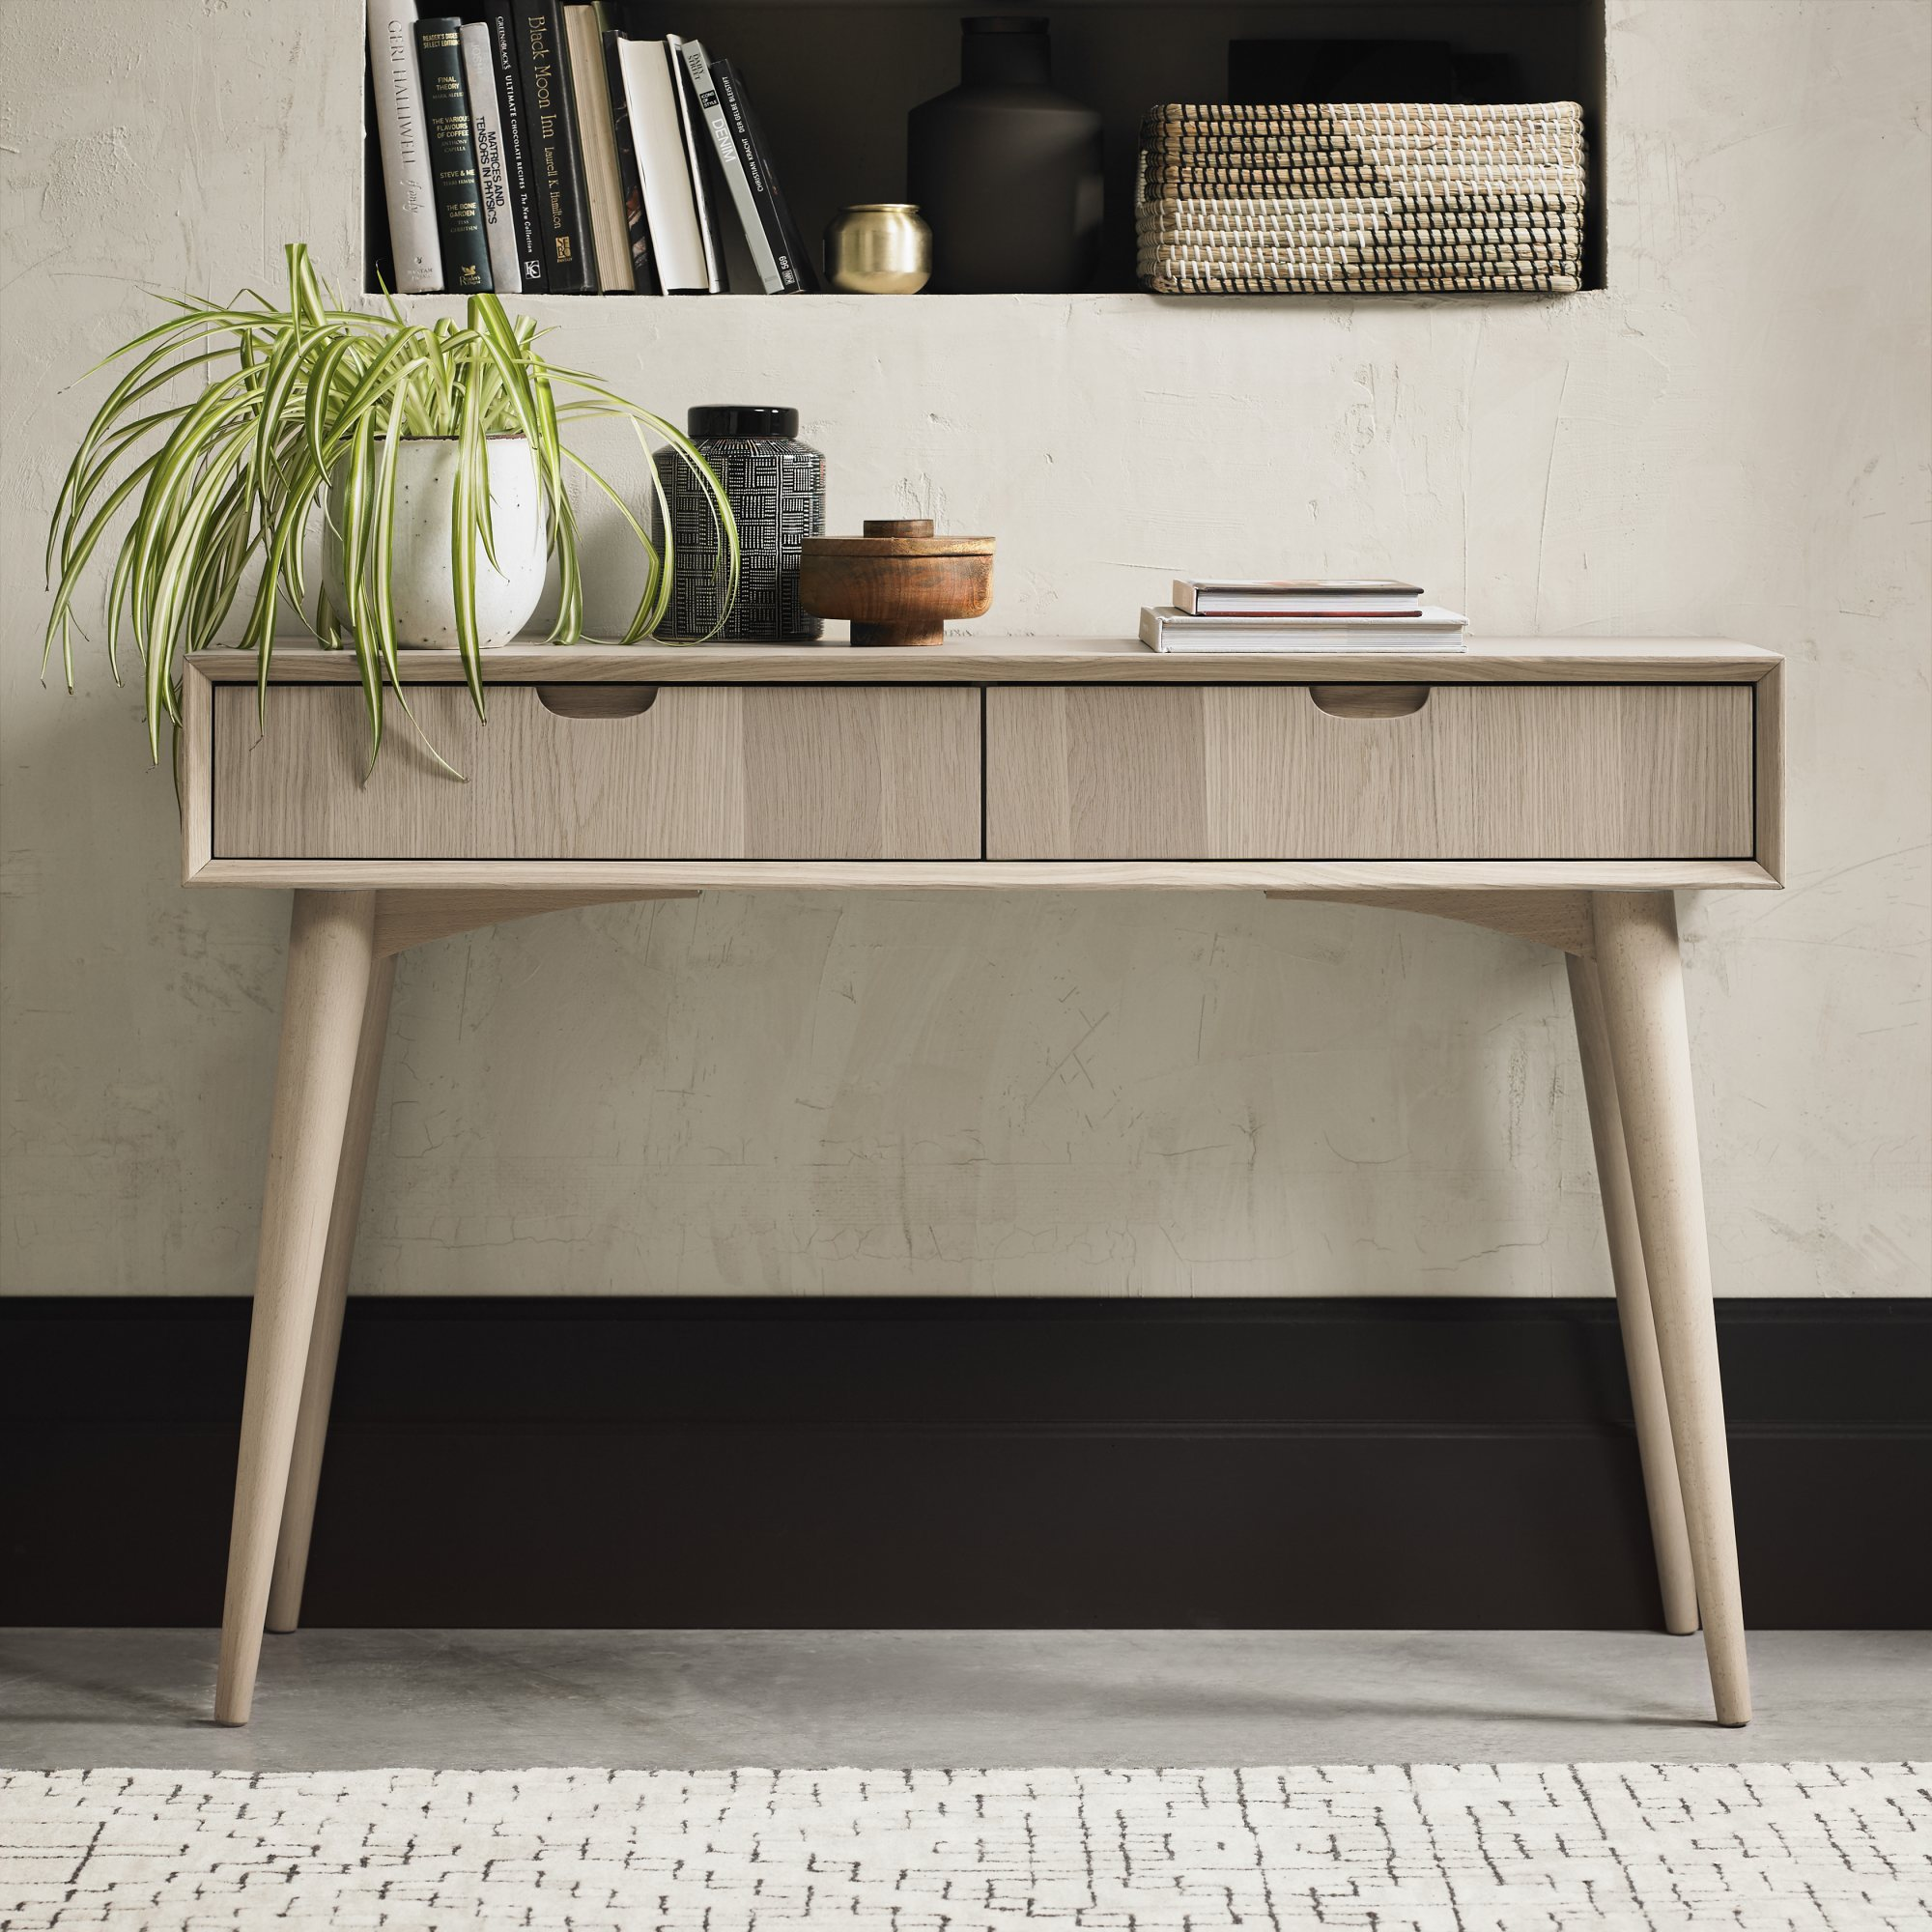 RETRO OAK CONSOLE WITH DRAWERS -  L115cm x D37cm x H77cm